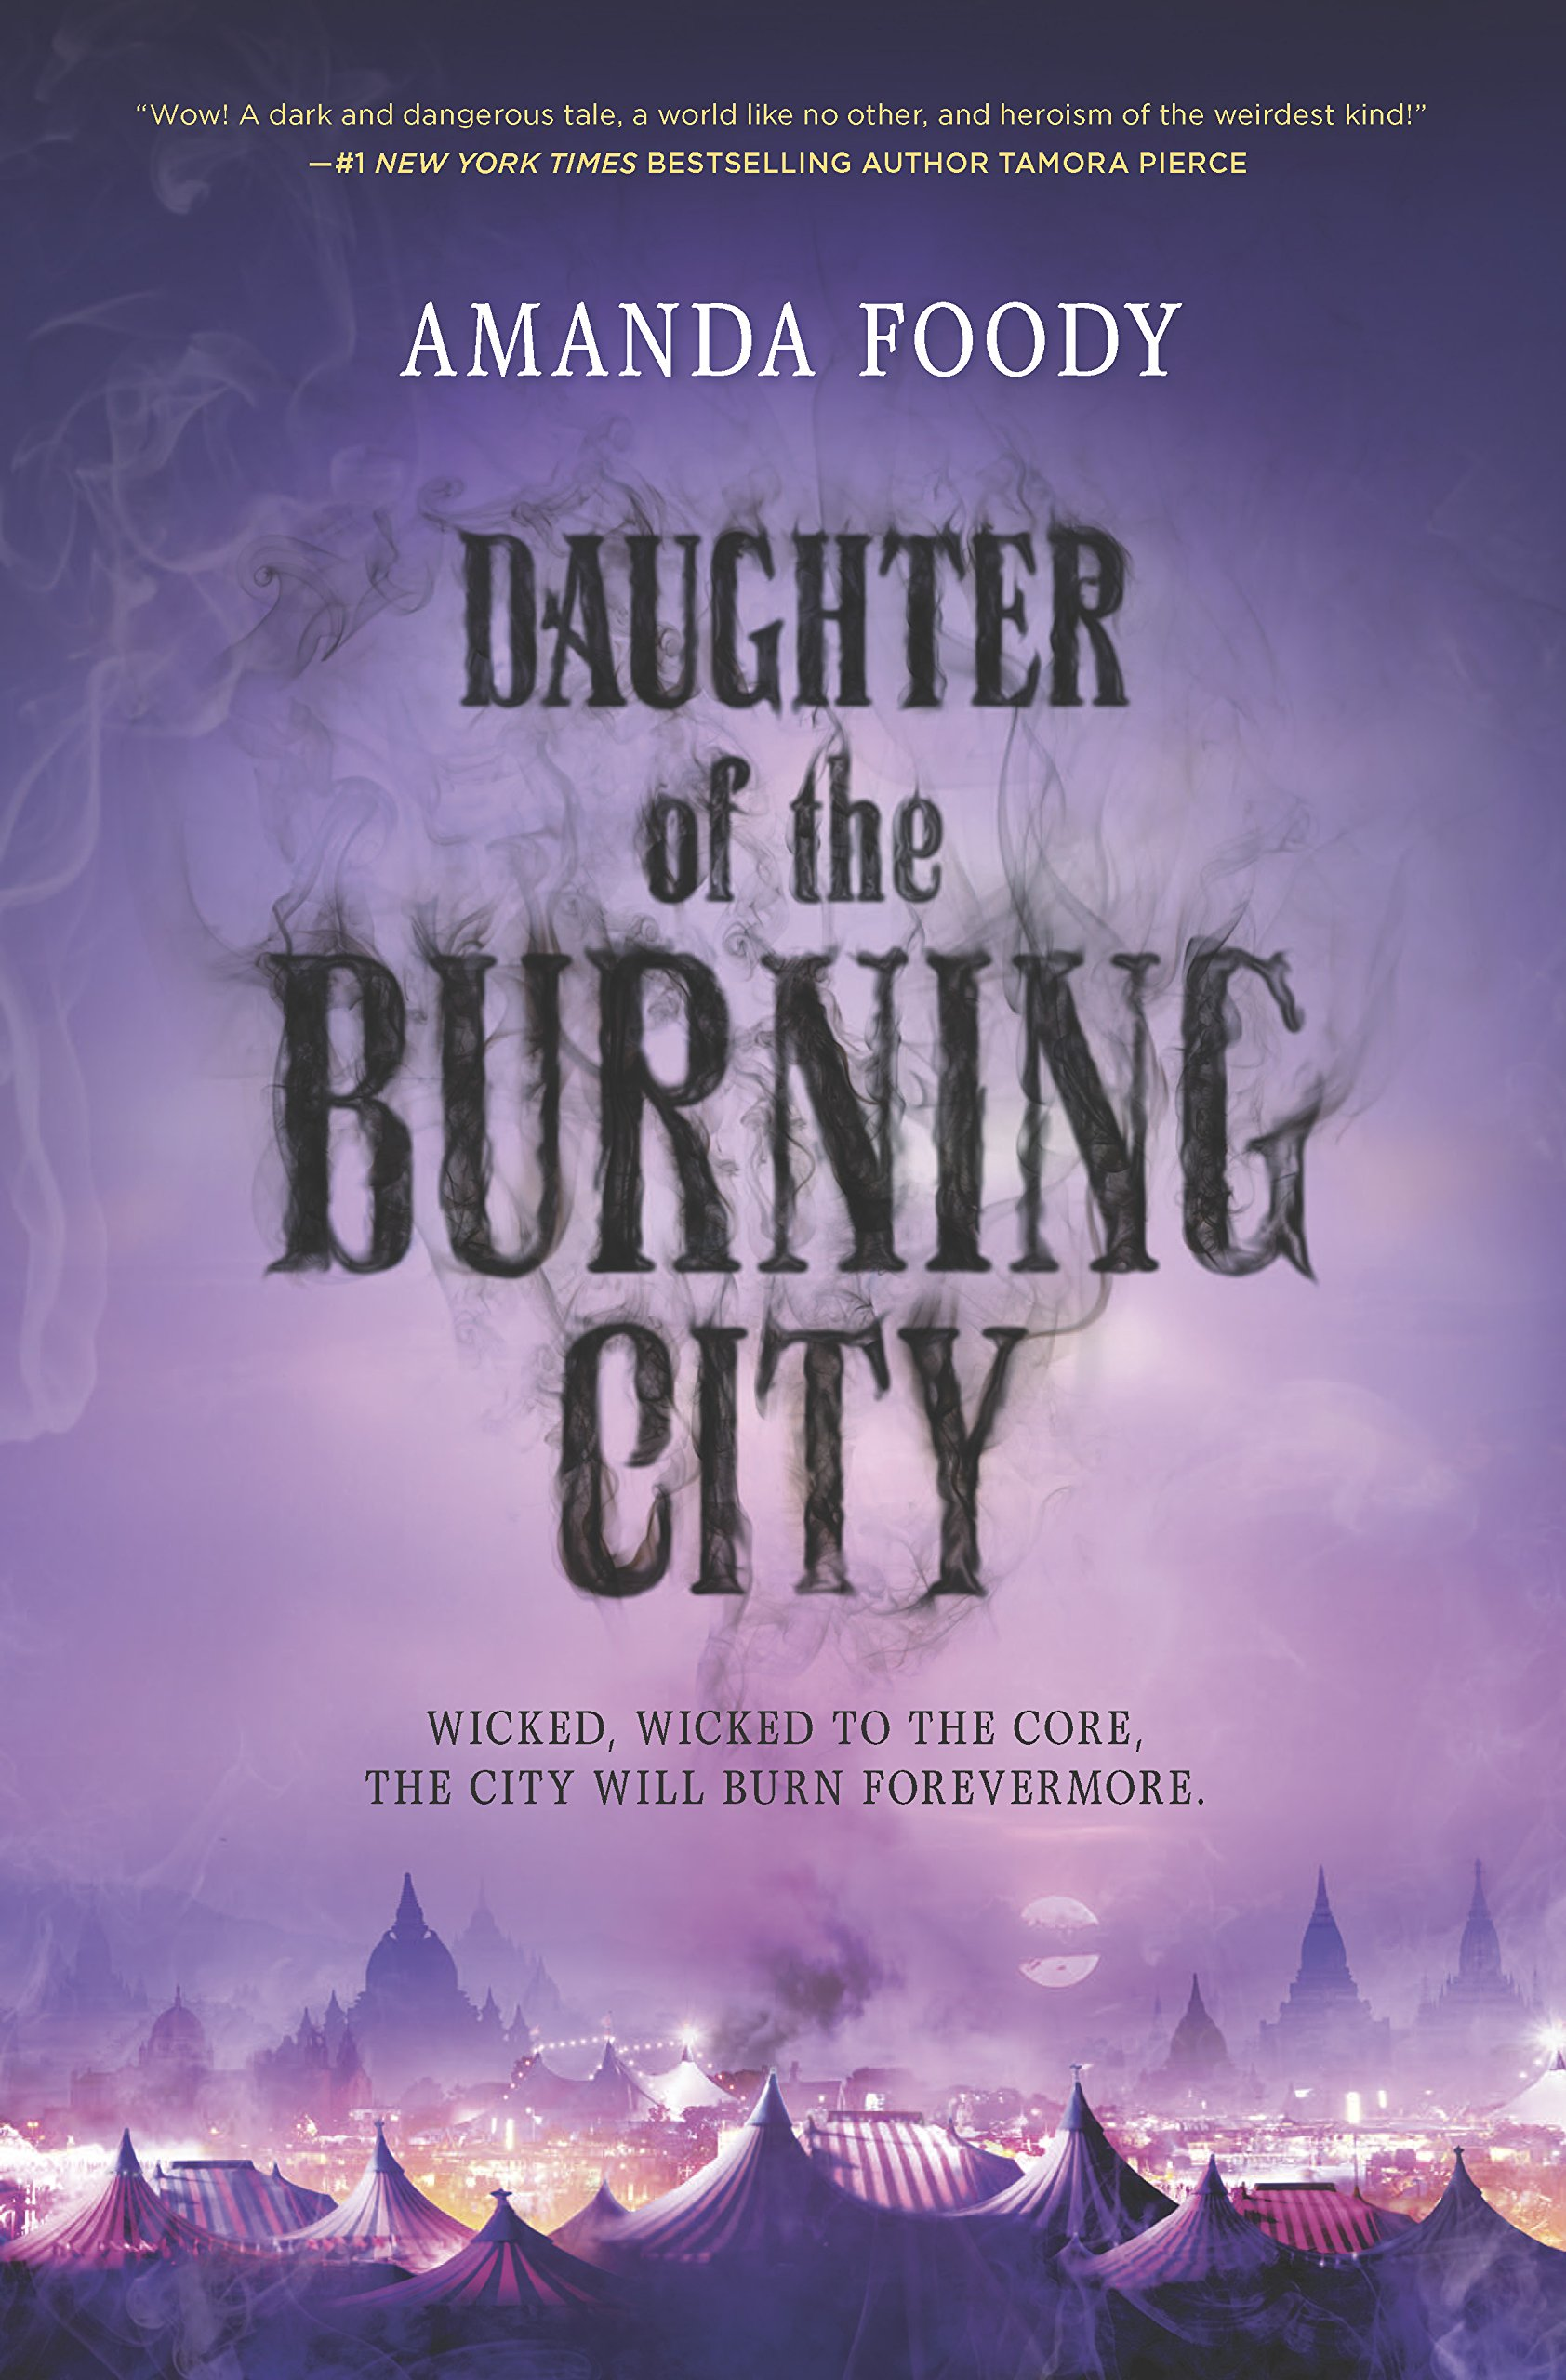 Amazon.com: Daughter of the Burning City (9780373212439): Foody, Amanda:  Books